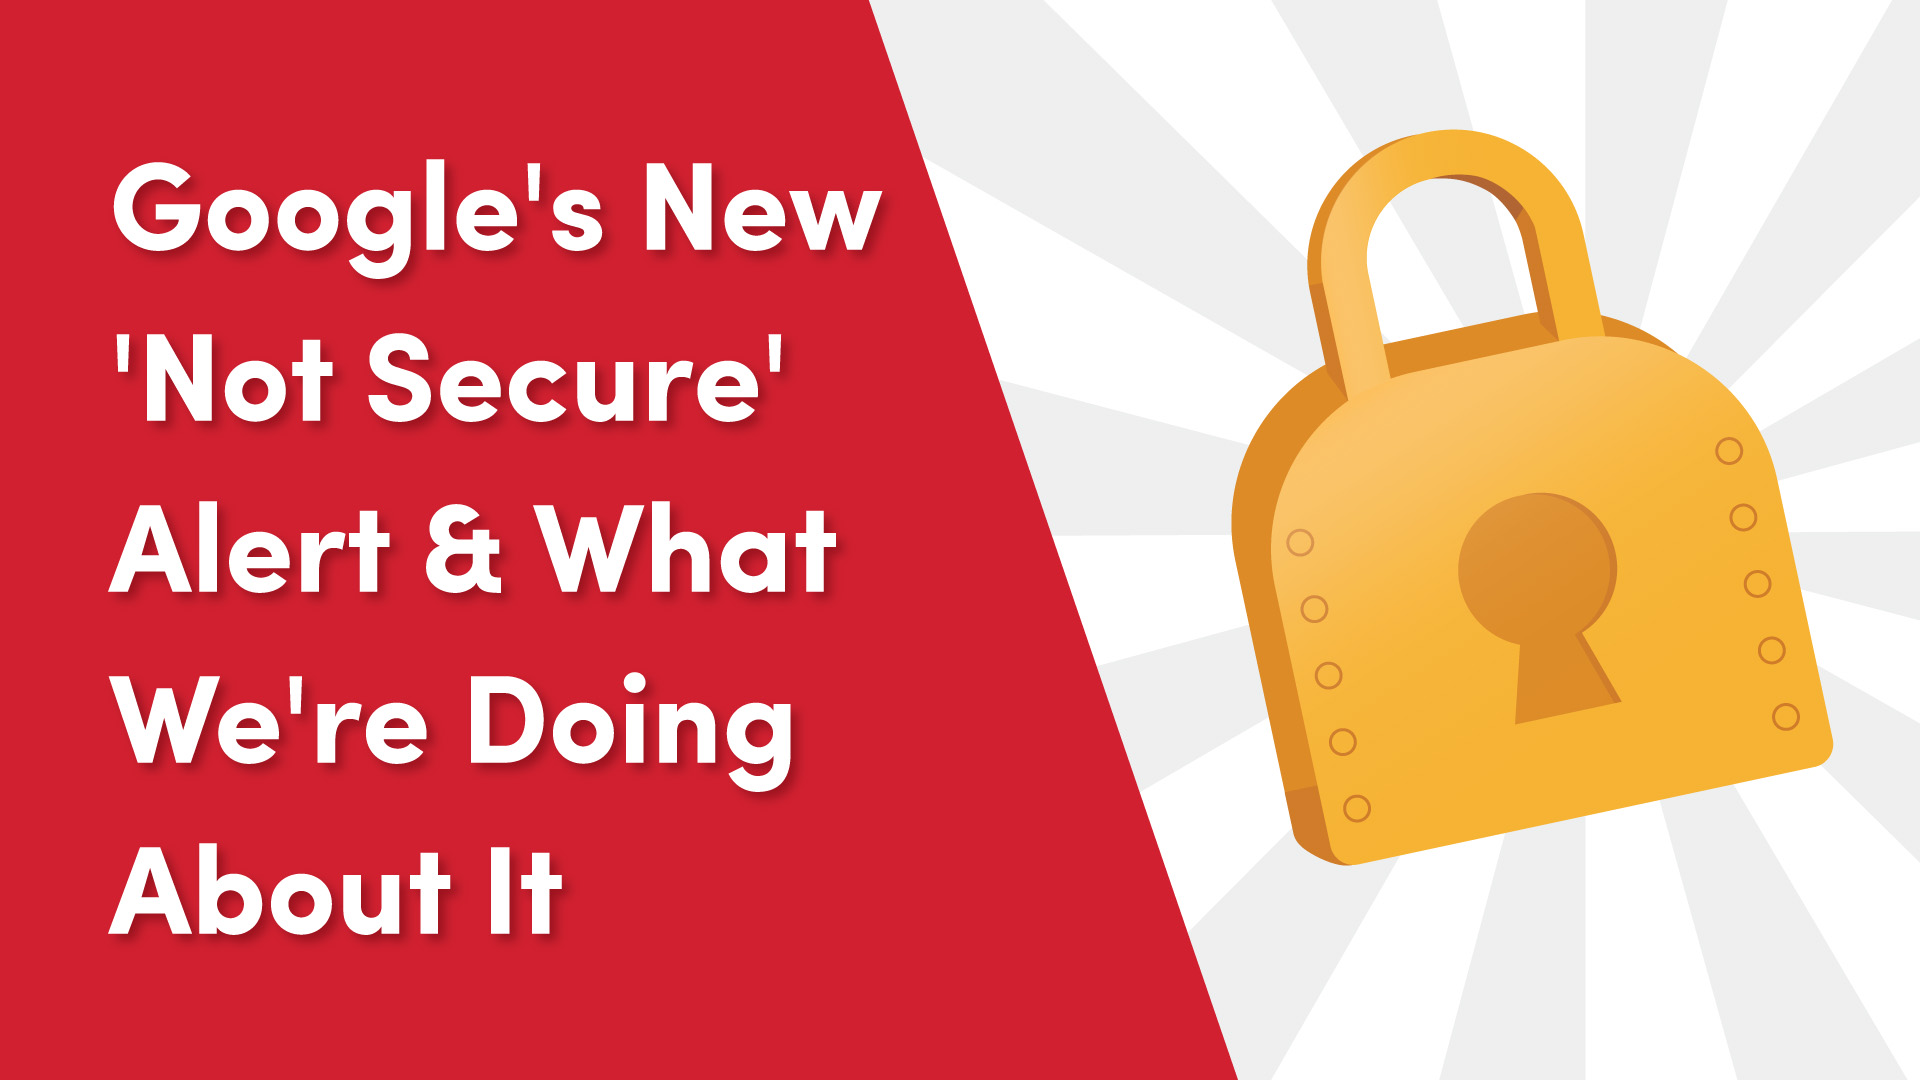 Google's New 'Not Secure' Alert & What We're Doing About It